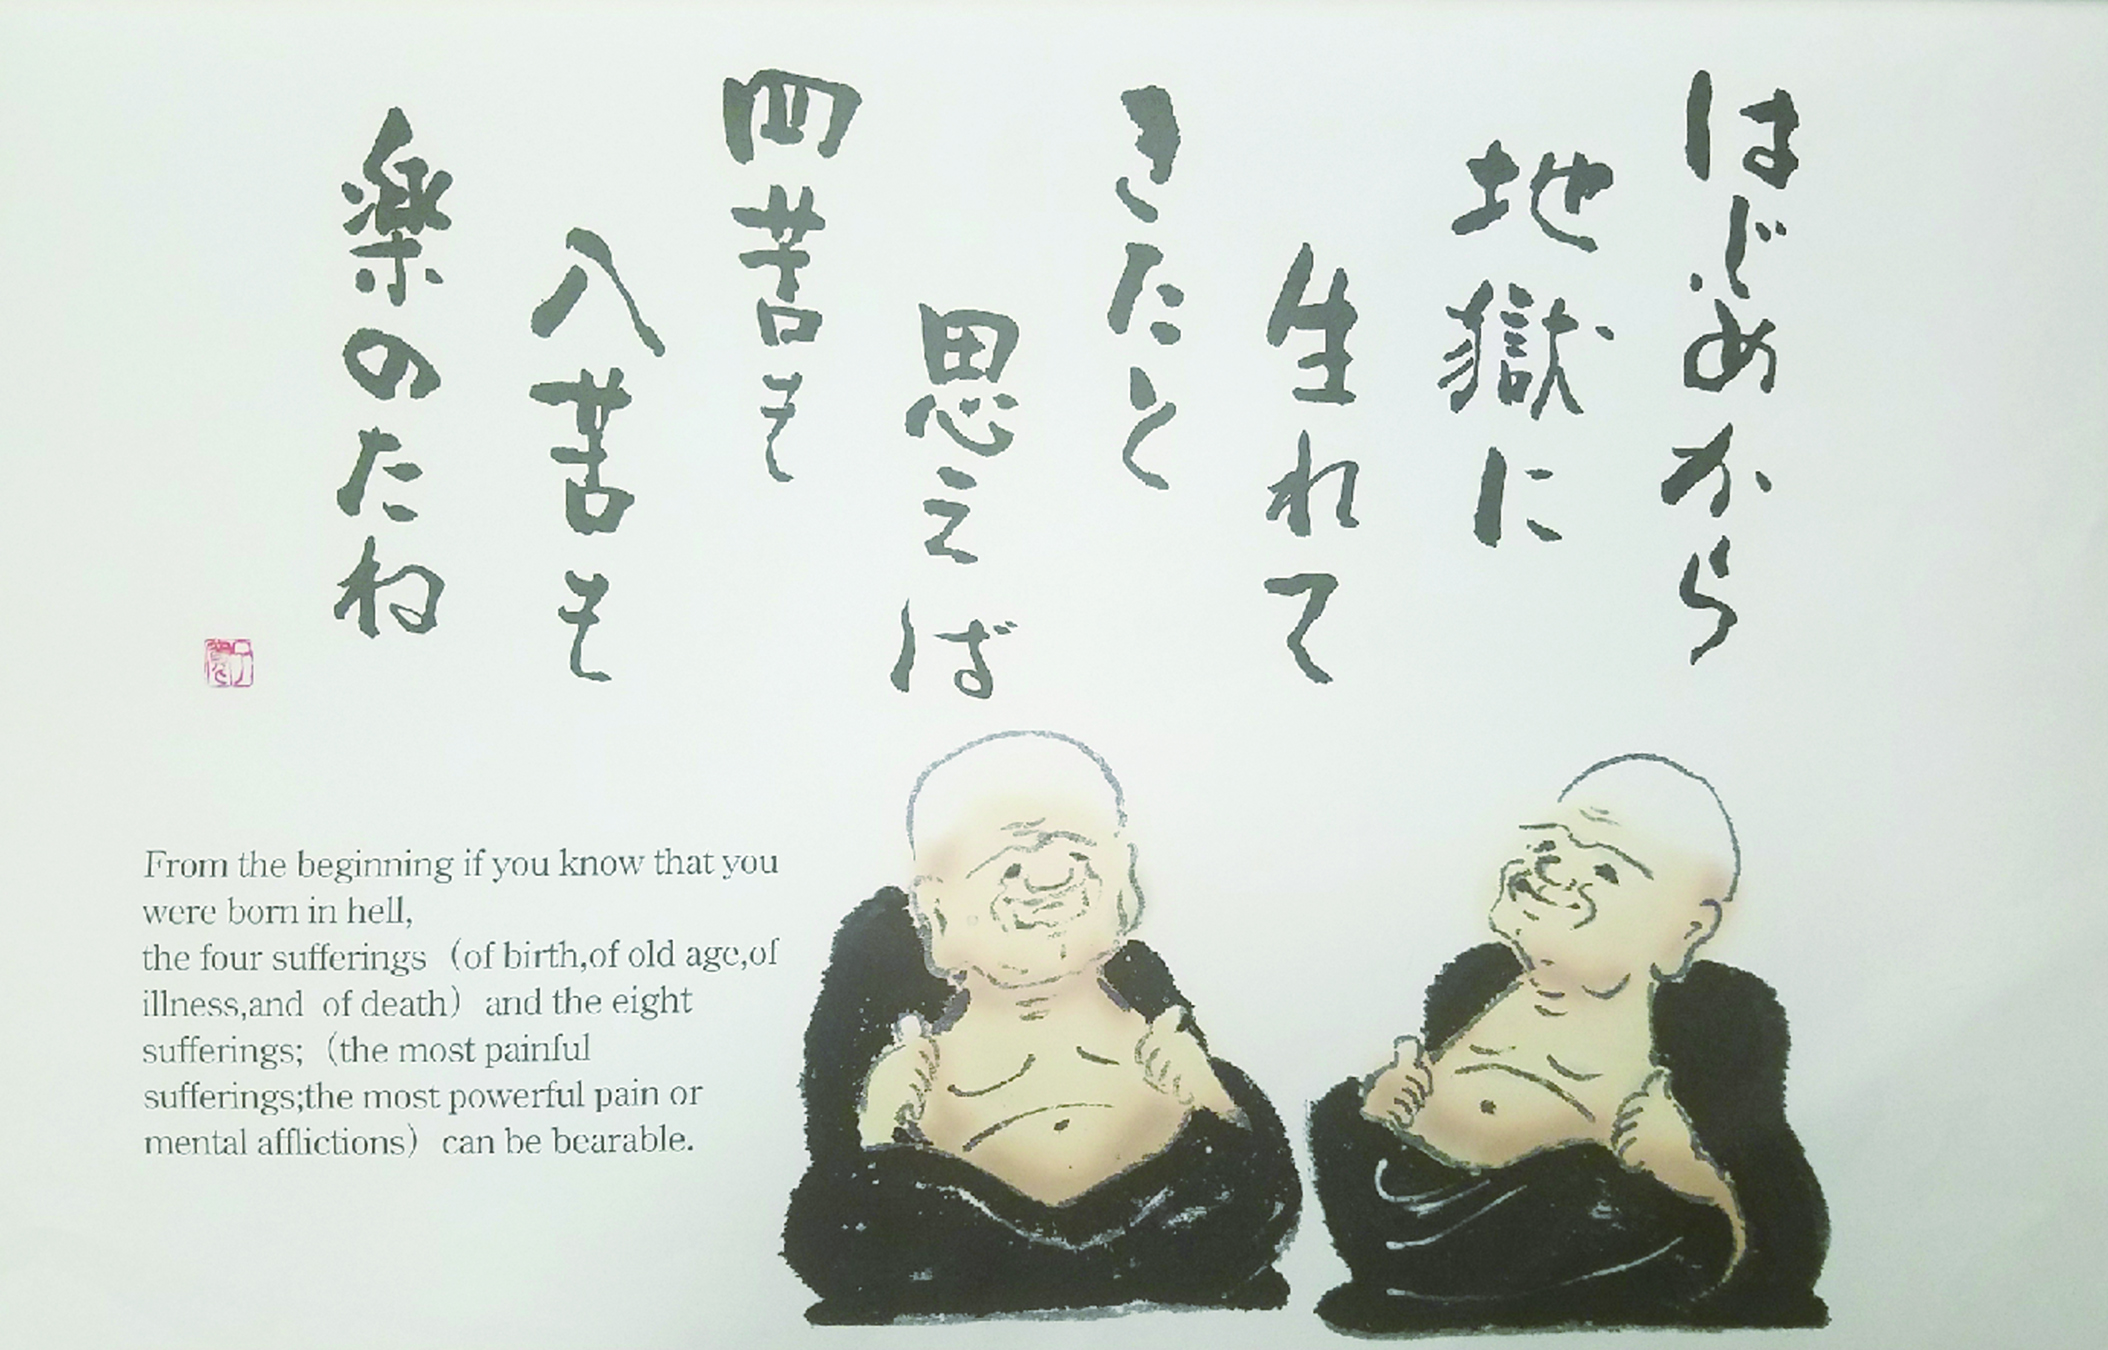 Comic image of Shushin, April 7, 2017 Issue